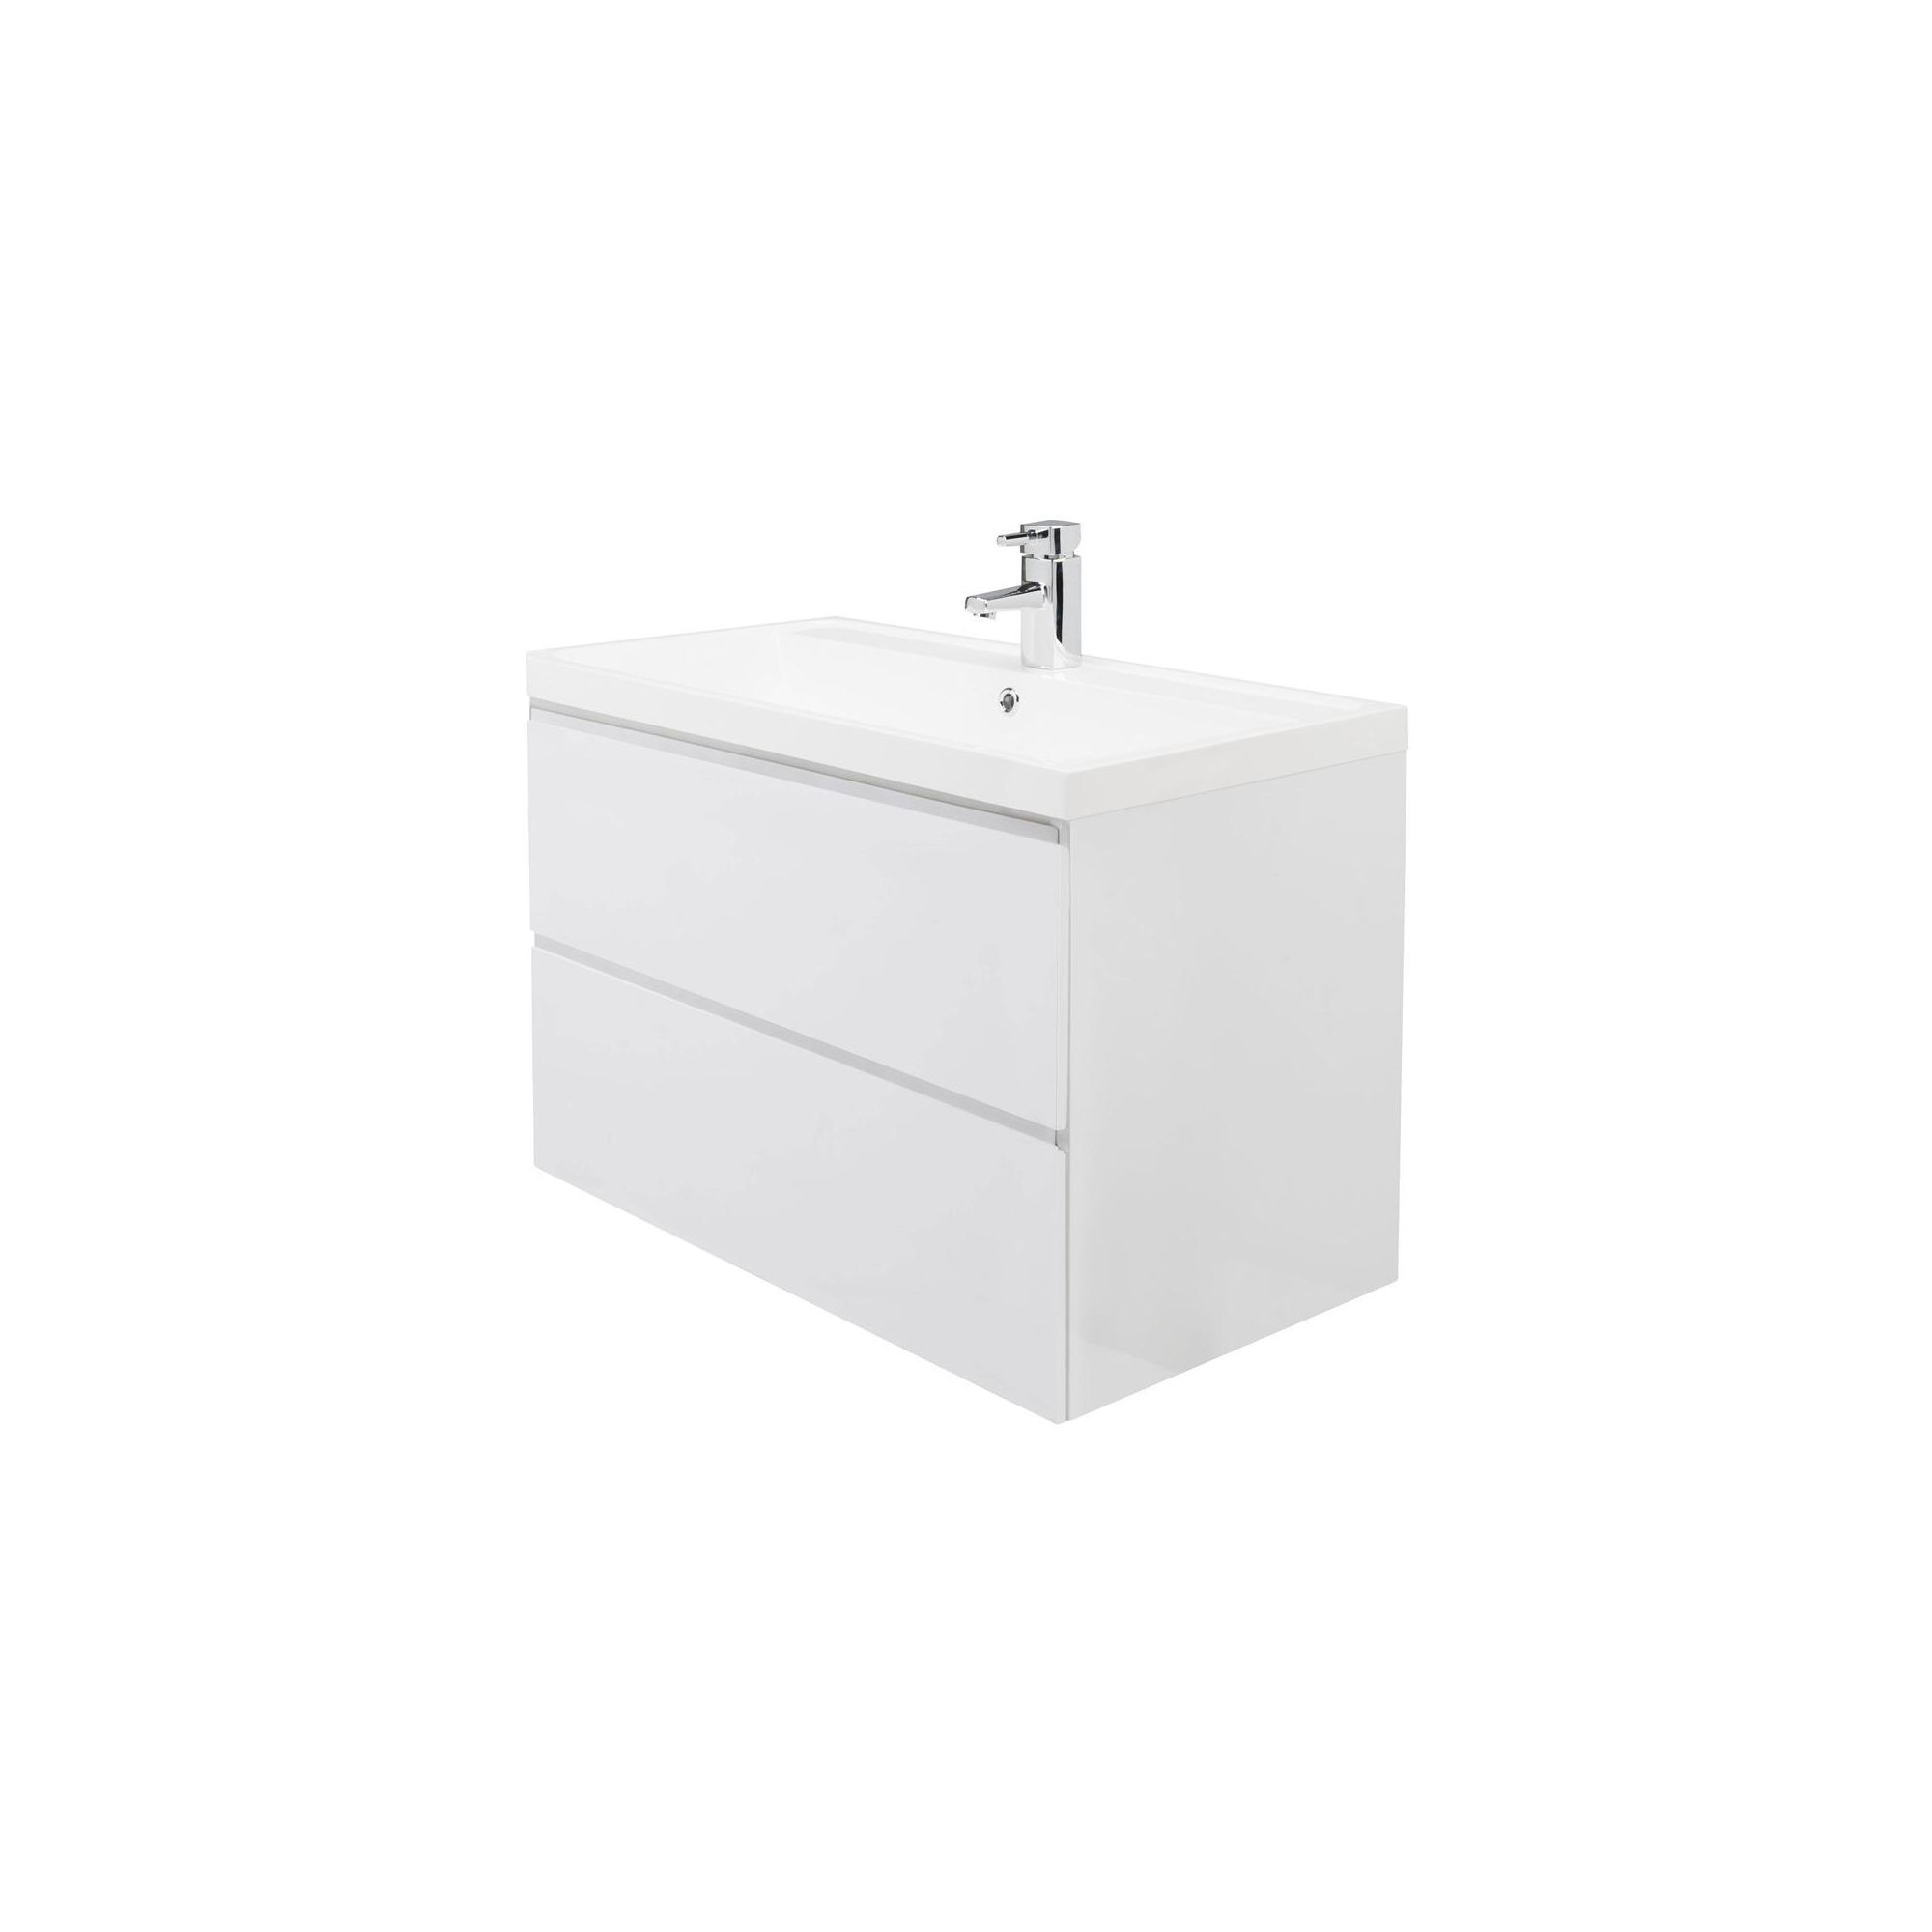 Premier Tribute 800 Wall Hung 2 Drawer Basin and Cabinet